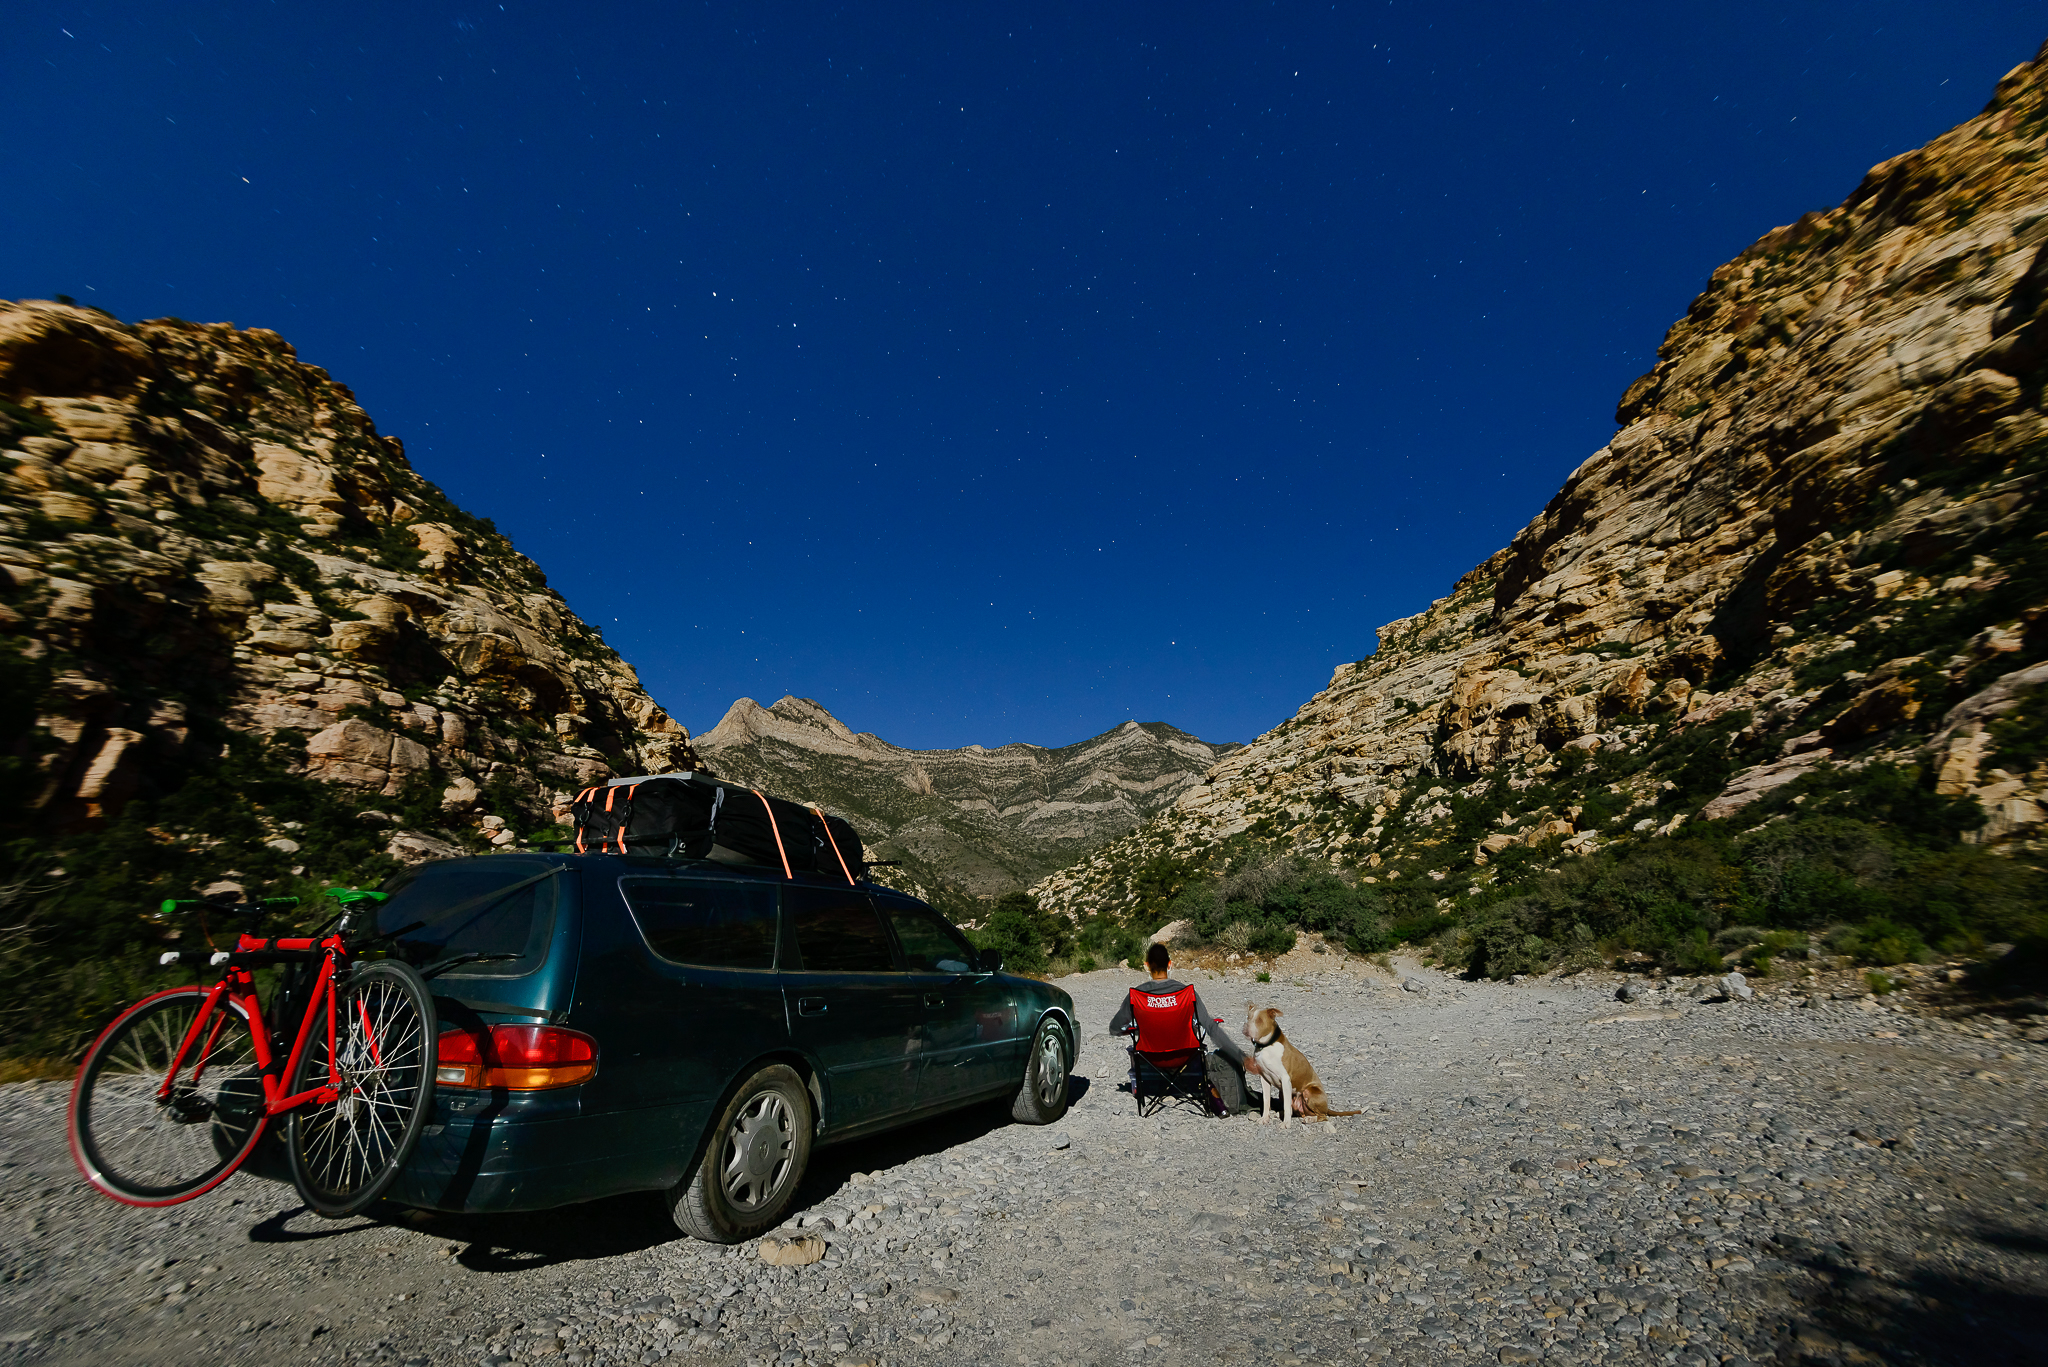 Prime office space in mountain lion laded BLM land. Red Rock Canyon, NV.